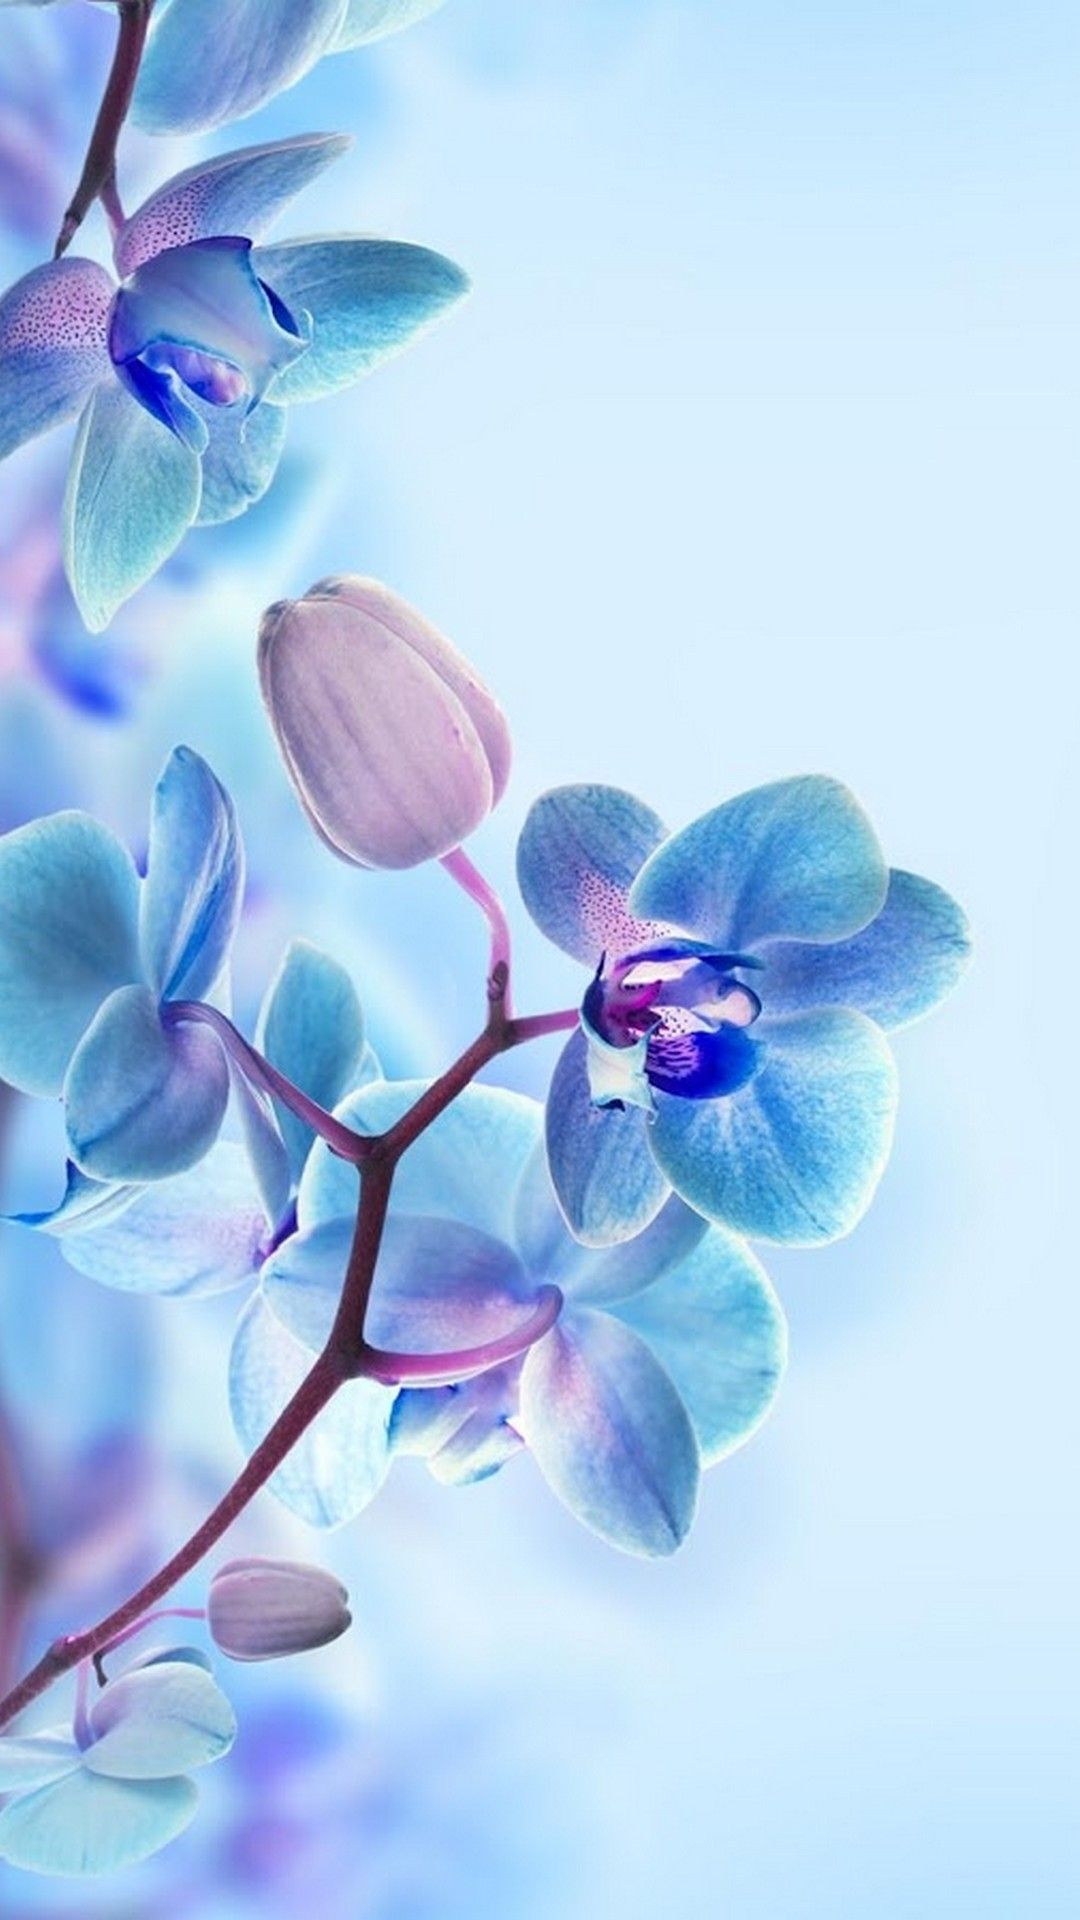 3d Flower Hd Wallpapers For Mobile Best Hd Wallpapers Blue Flower Wallpaper 3d Wallpaper For Mobile Wallpaper Images Hd